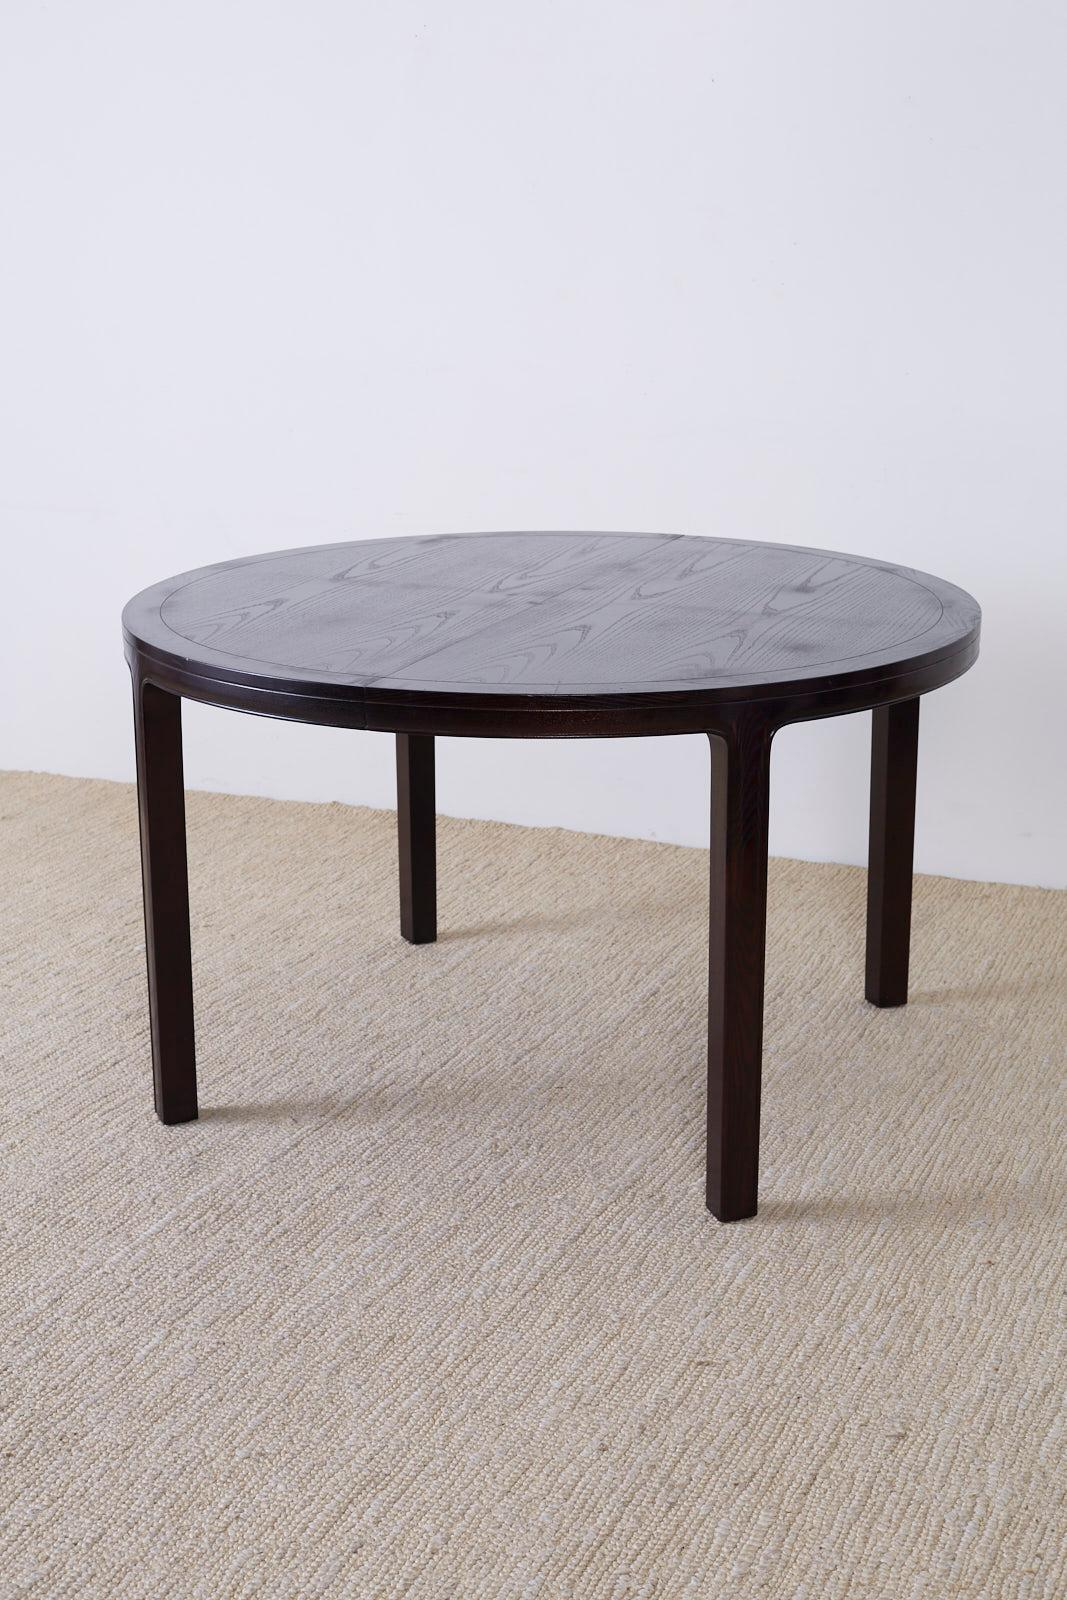 Round Timber Dining Table Mcguire Asian Style Ebonized Hardwood Extending Dining Table